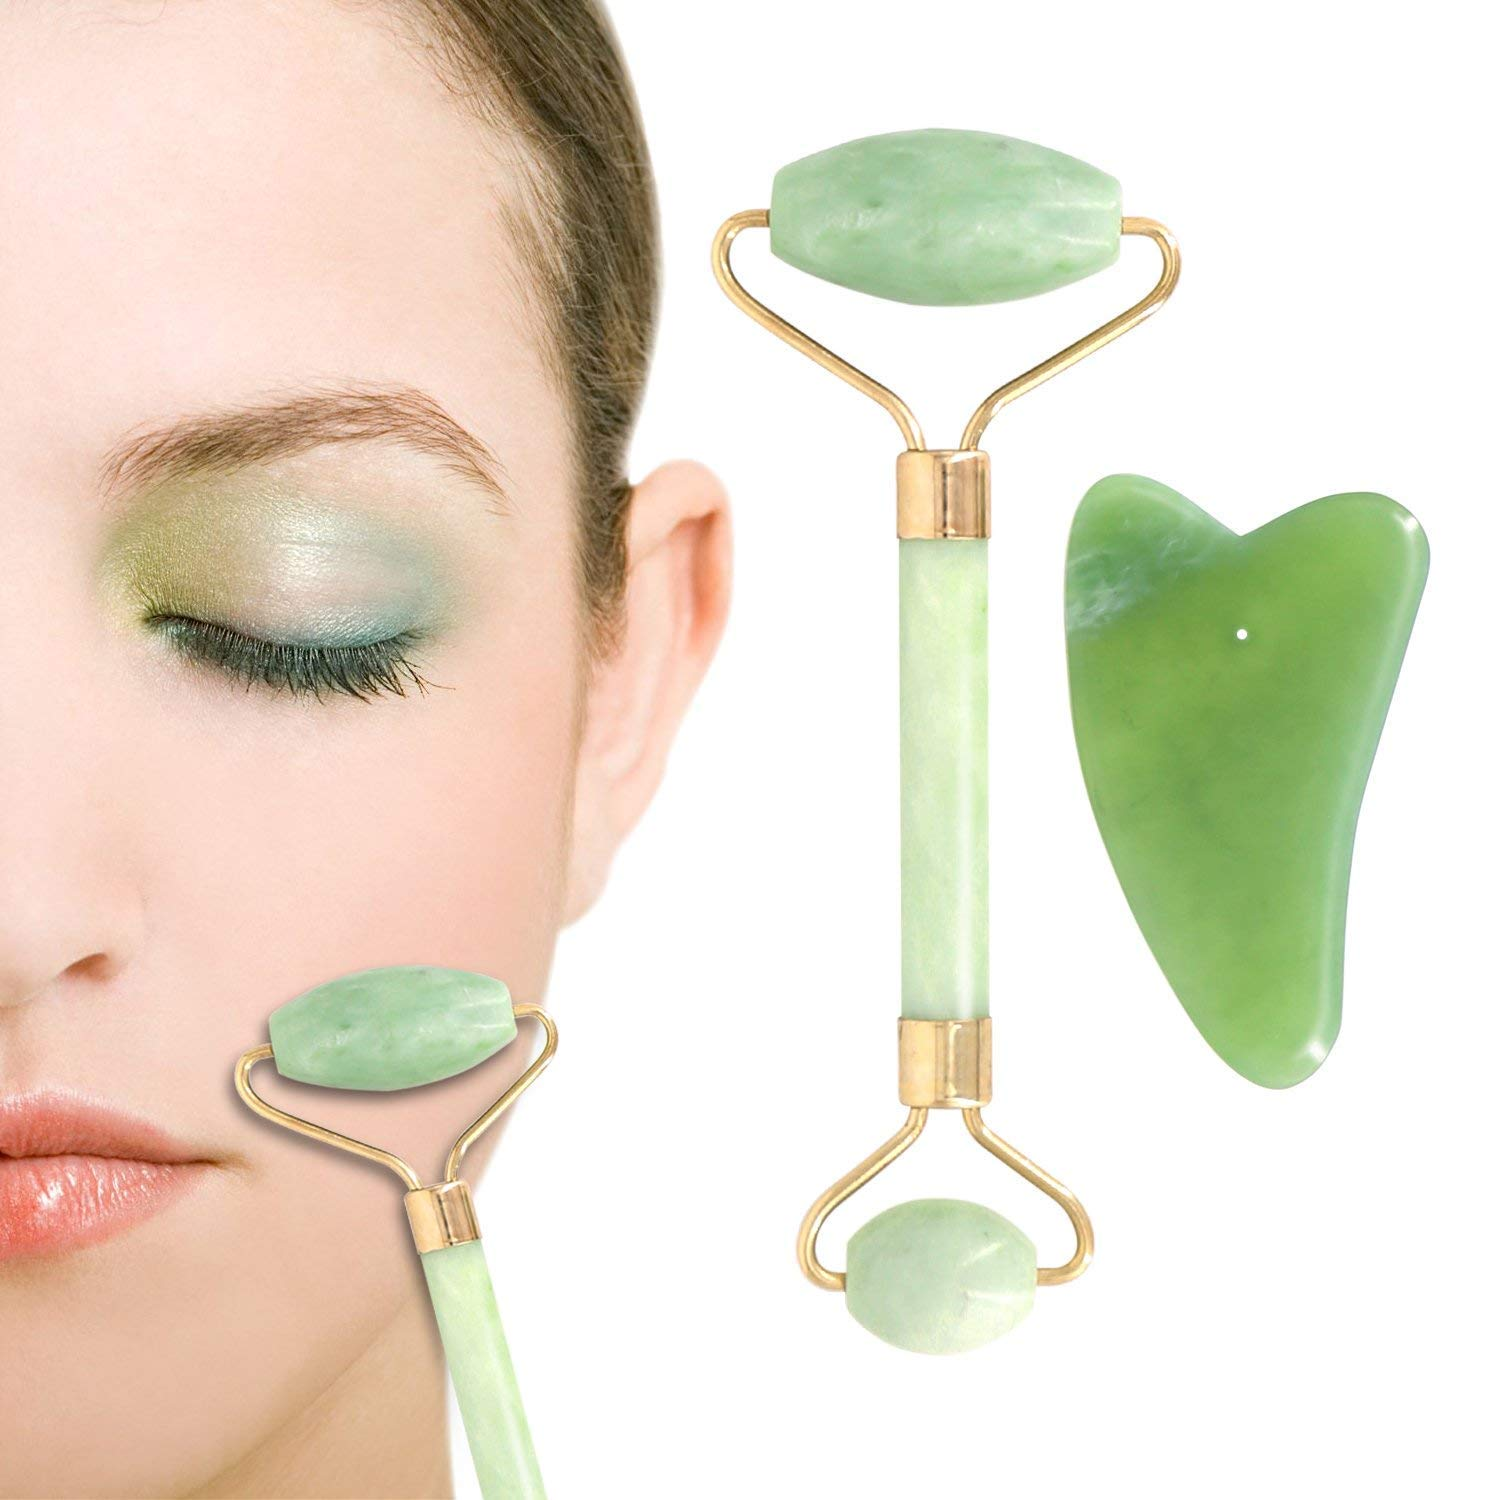 Anti aging Natural Jade Roller for Face and Gua Sha Massage Tool Set imoocare ZT-0003-BLK